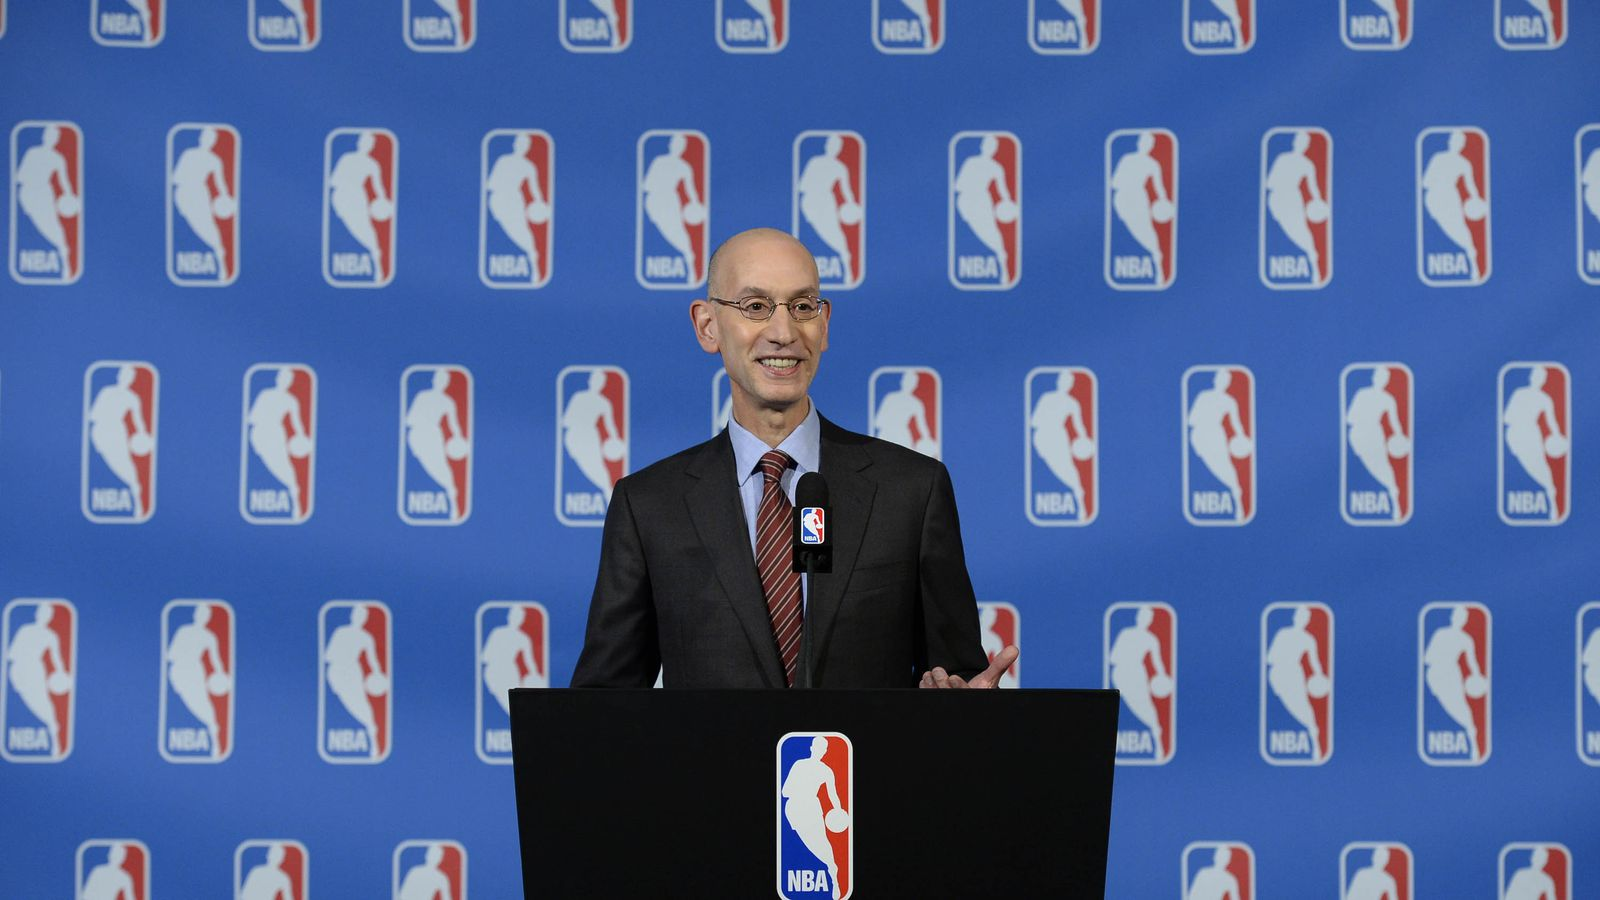 The NBA might allow fans to pay to watch the last 5 minutes of games